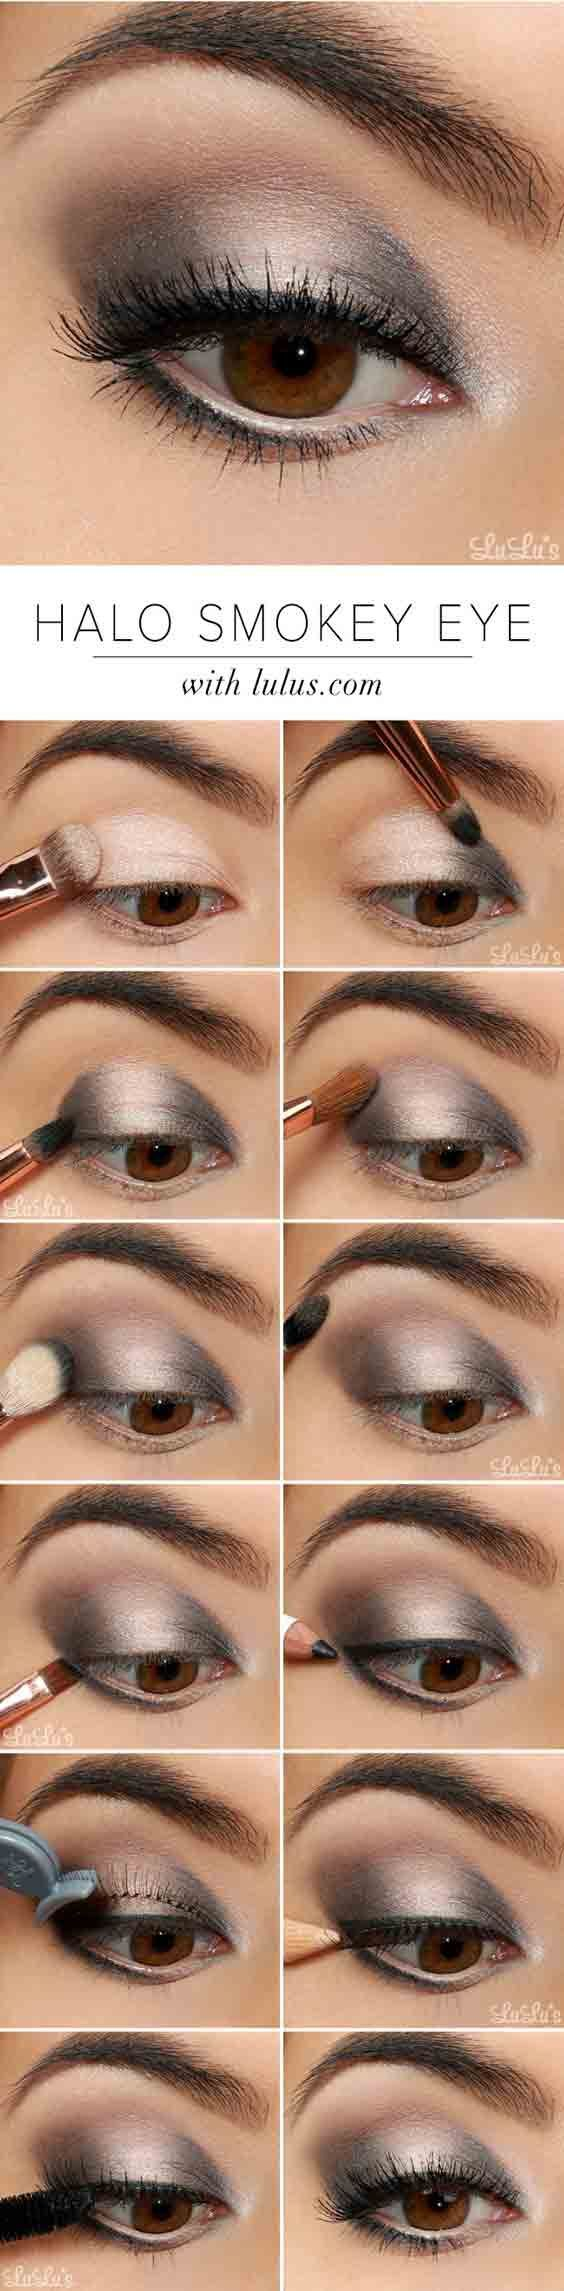 Свадьба - Halo Smokey Eye